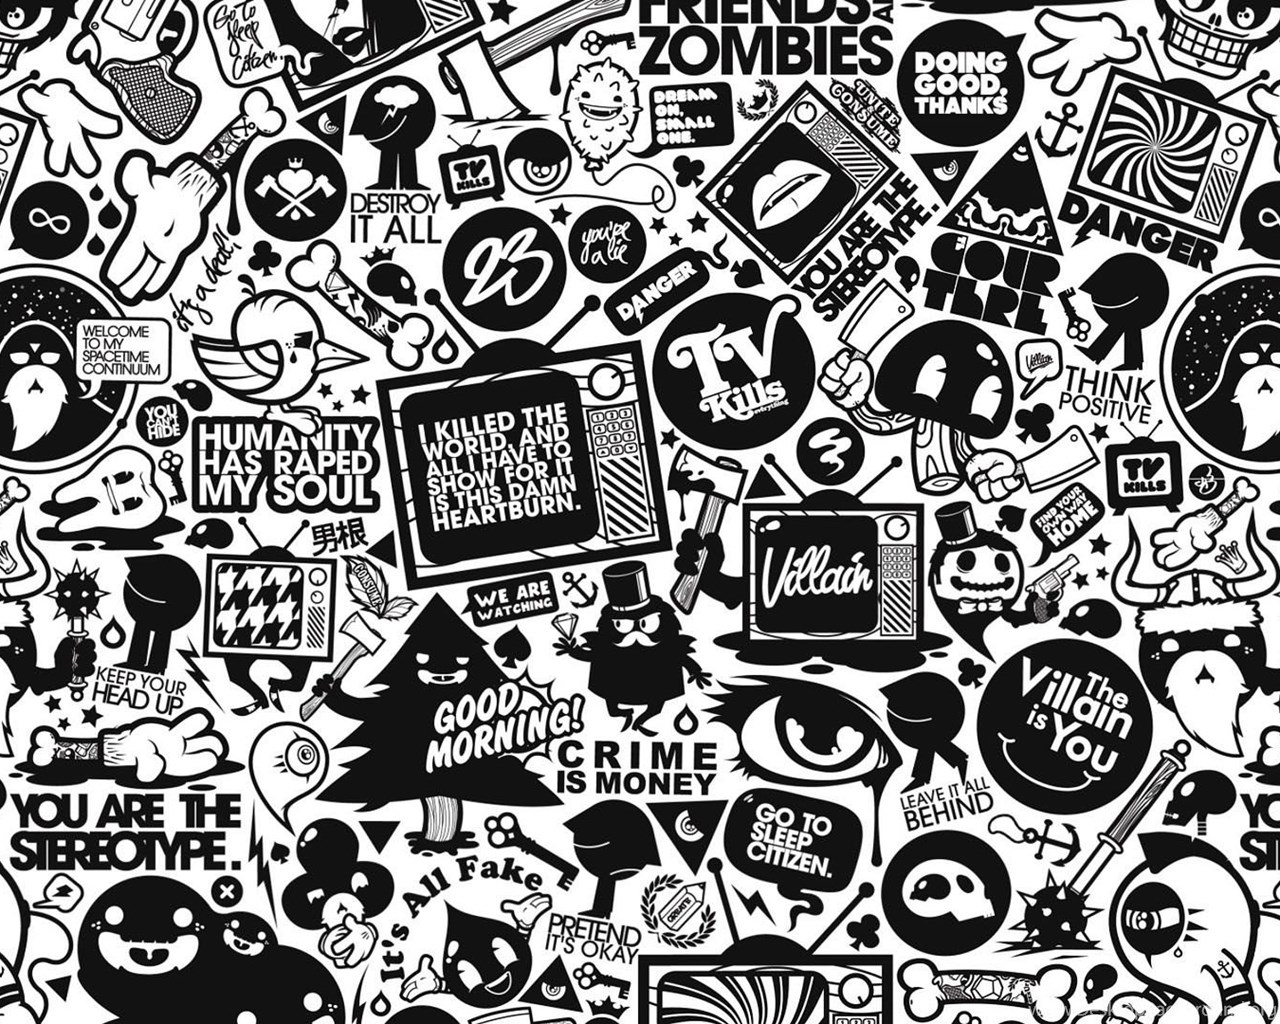 Iphone 4s Girly Wallpapers Black And White Collage Vector 1920x1080 Hd Wallpapers